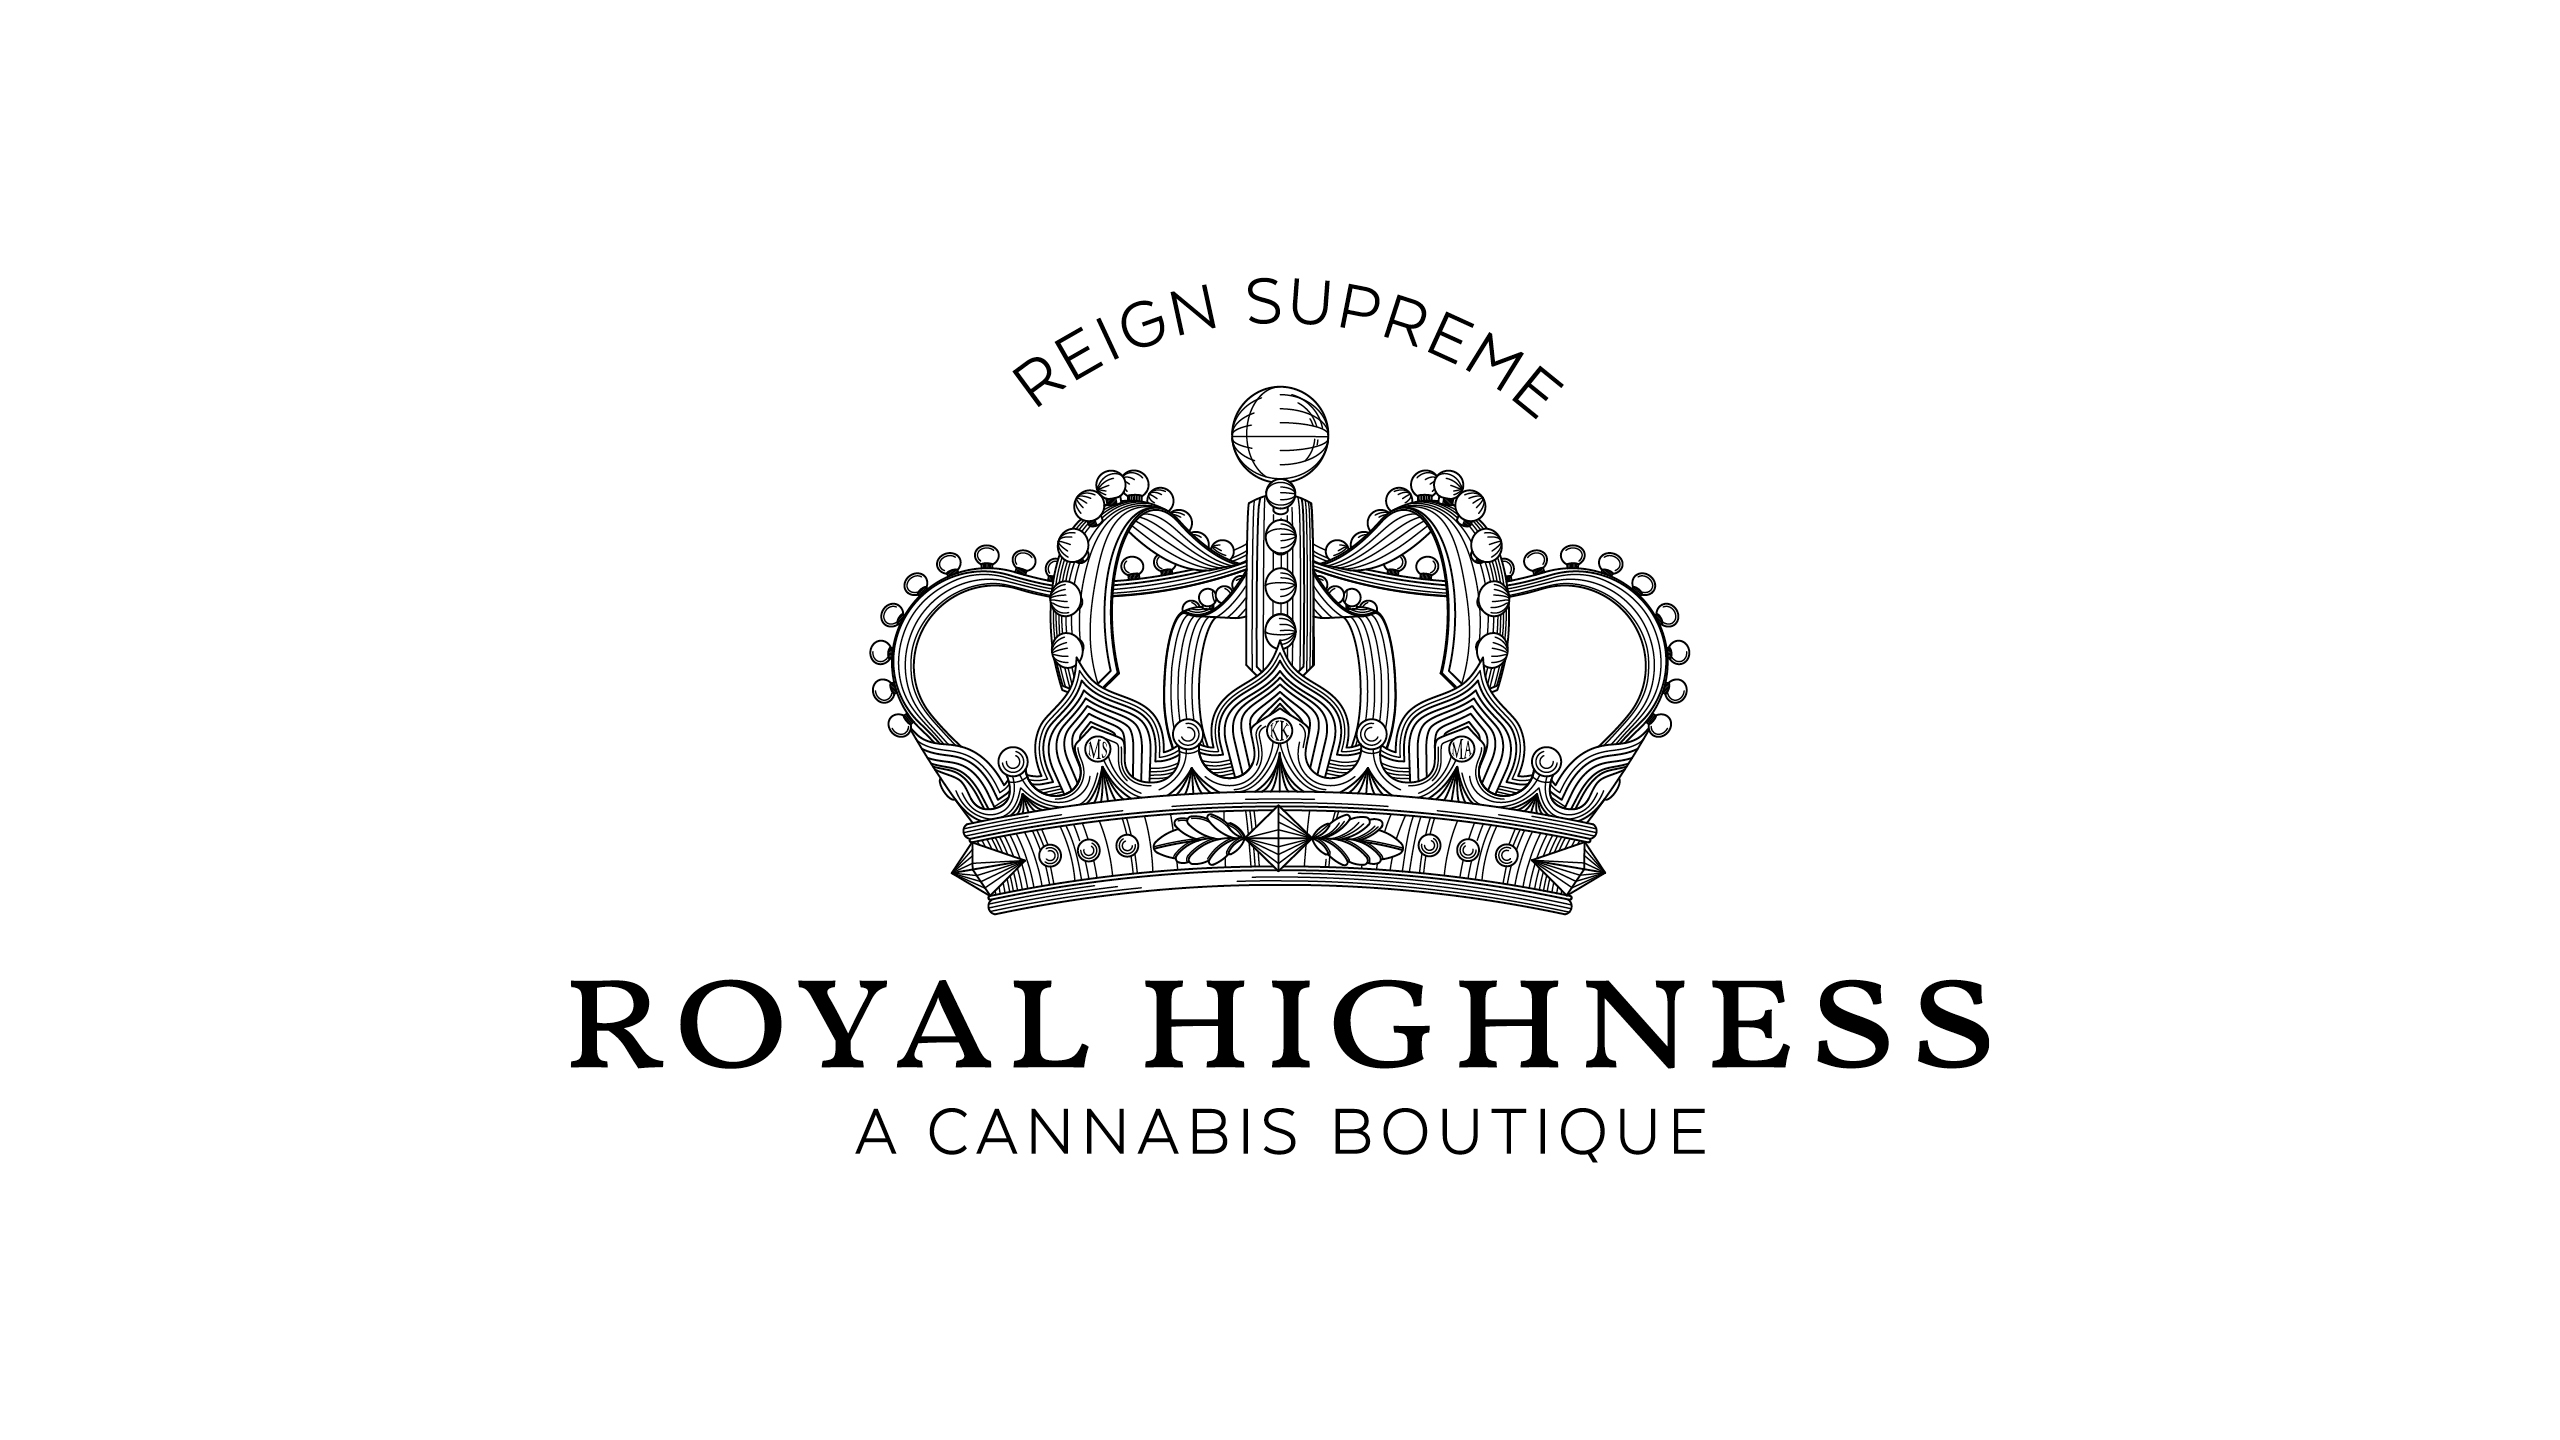 Royal Highness Brand Identity Creation by High Road Design Studio